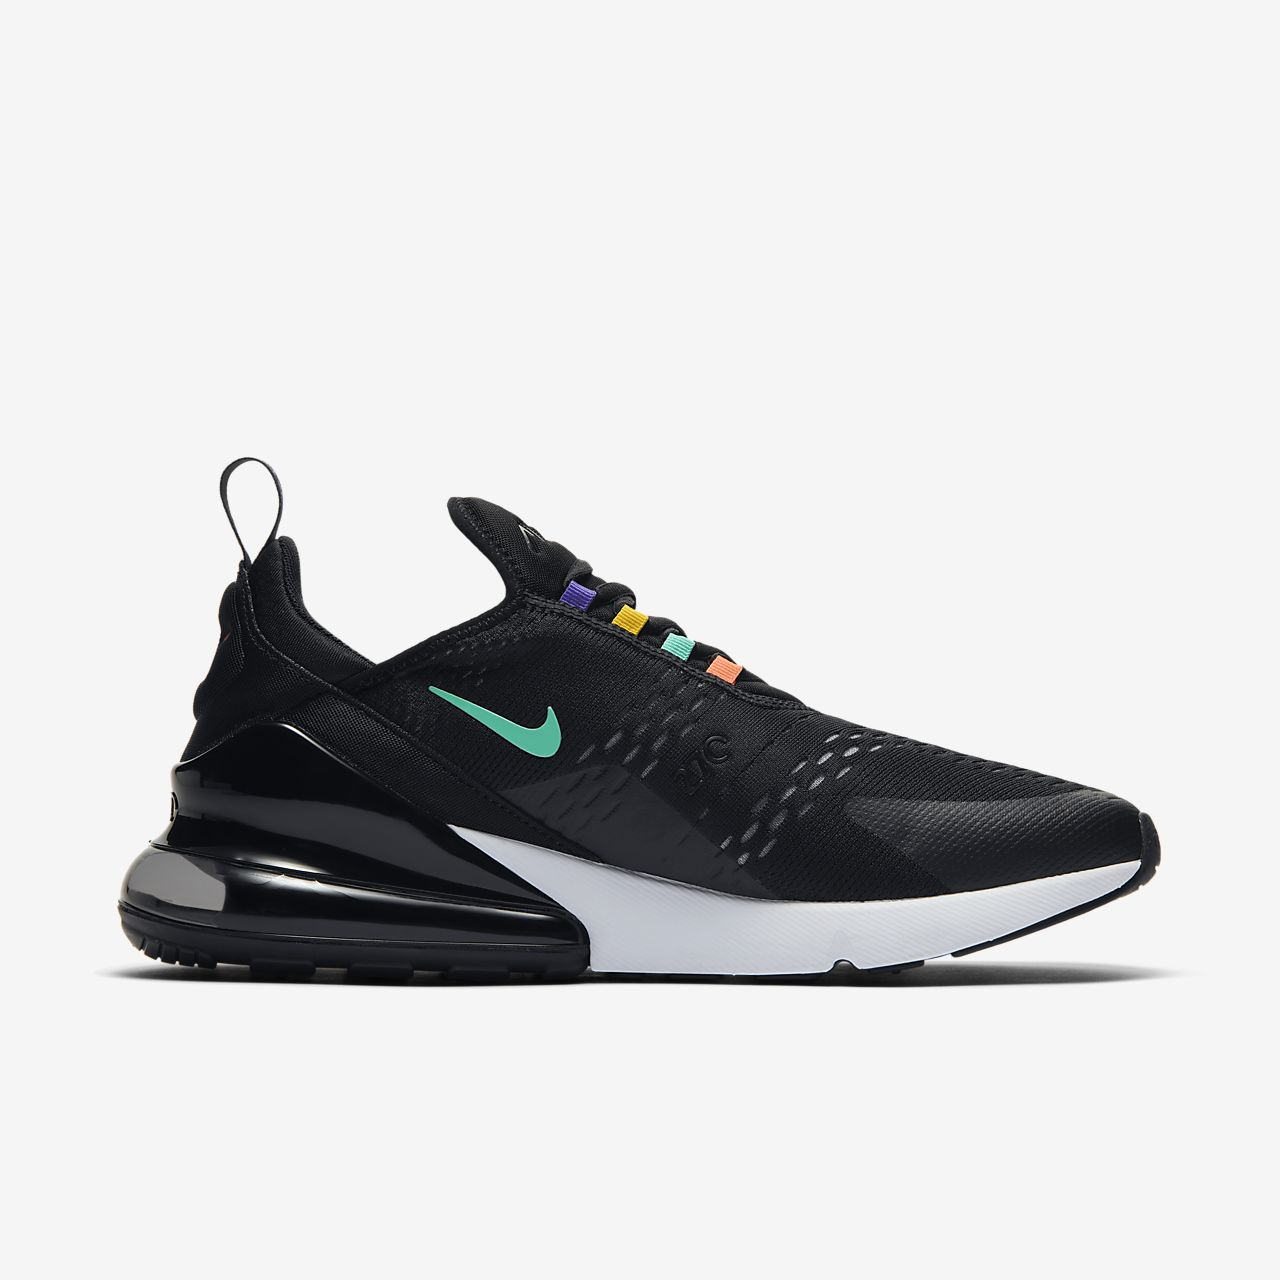 the best attitude d5dca b2651 Nike Air Max 270 Men's Shoe